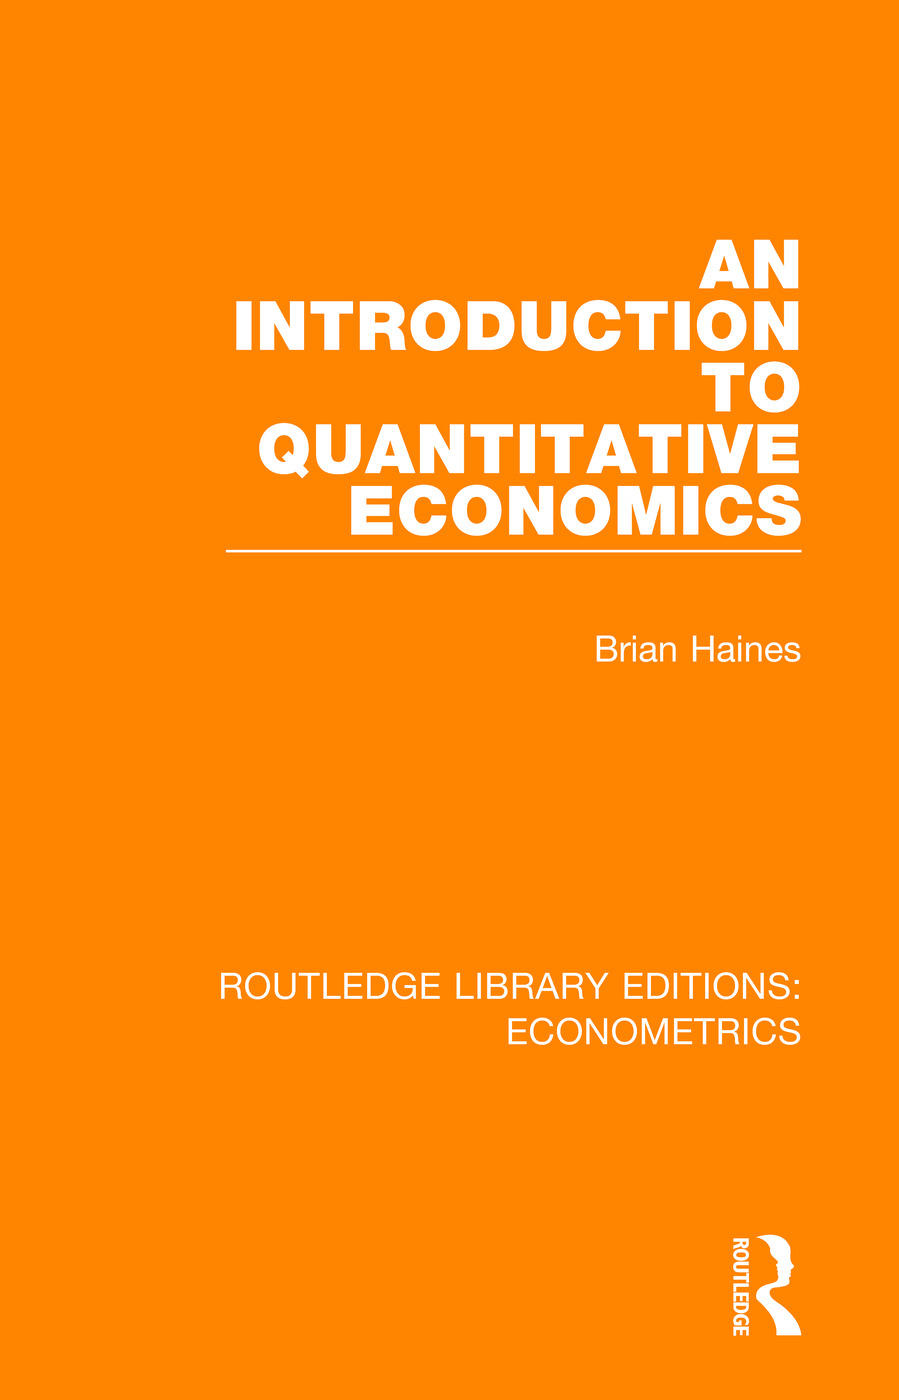 An Introduction to Quantitative Economics: 1st Edition (Paperback) book cover